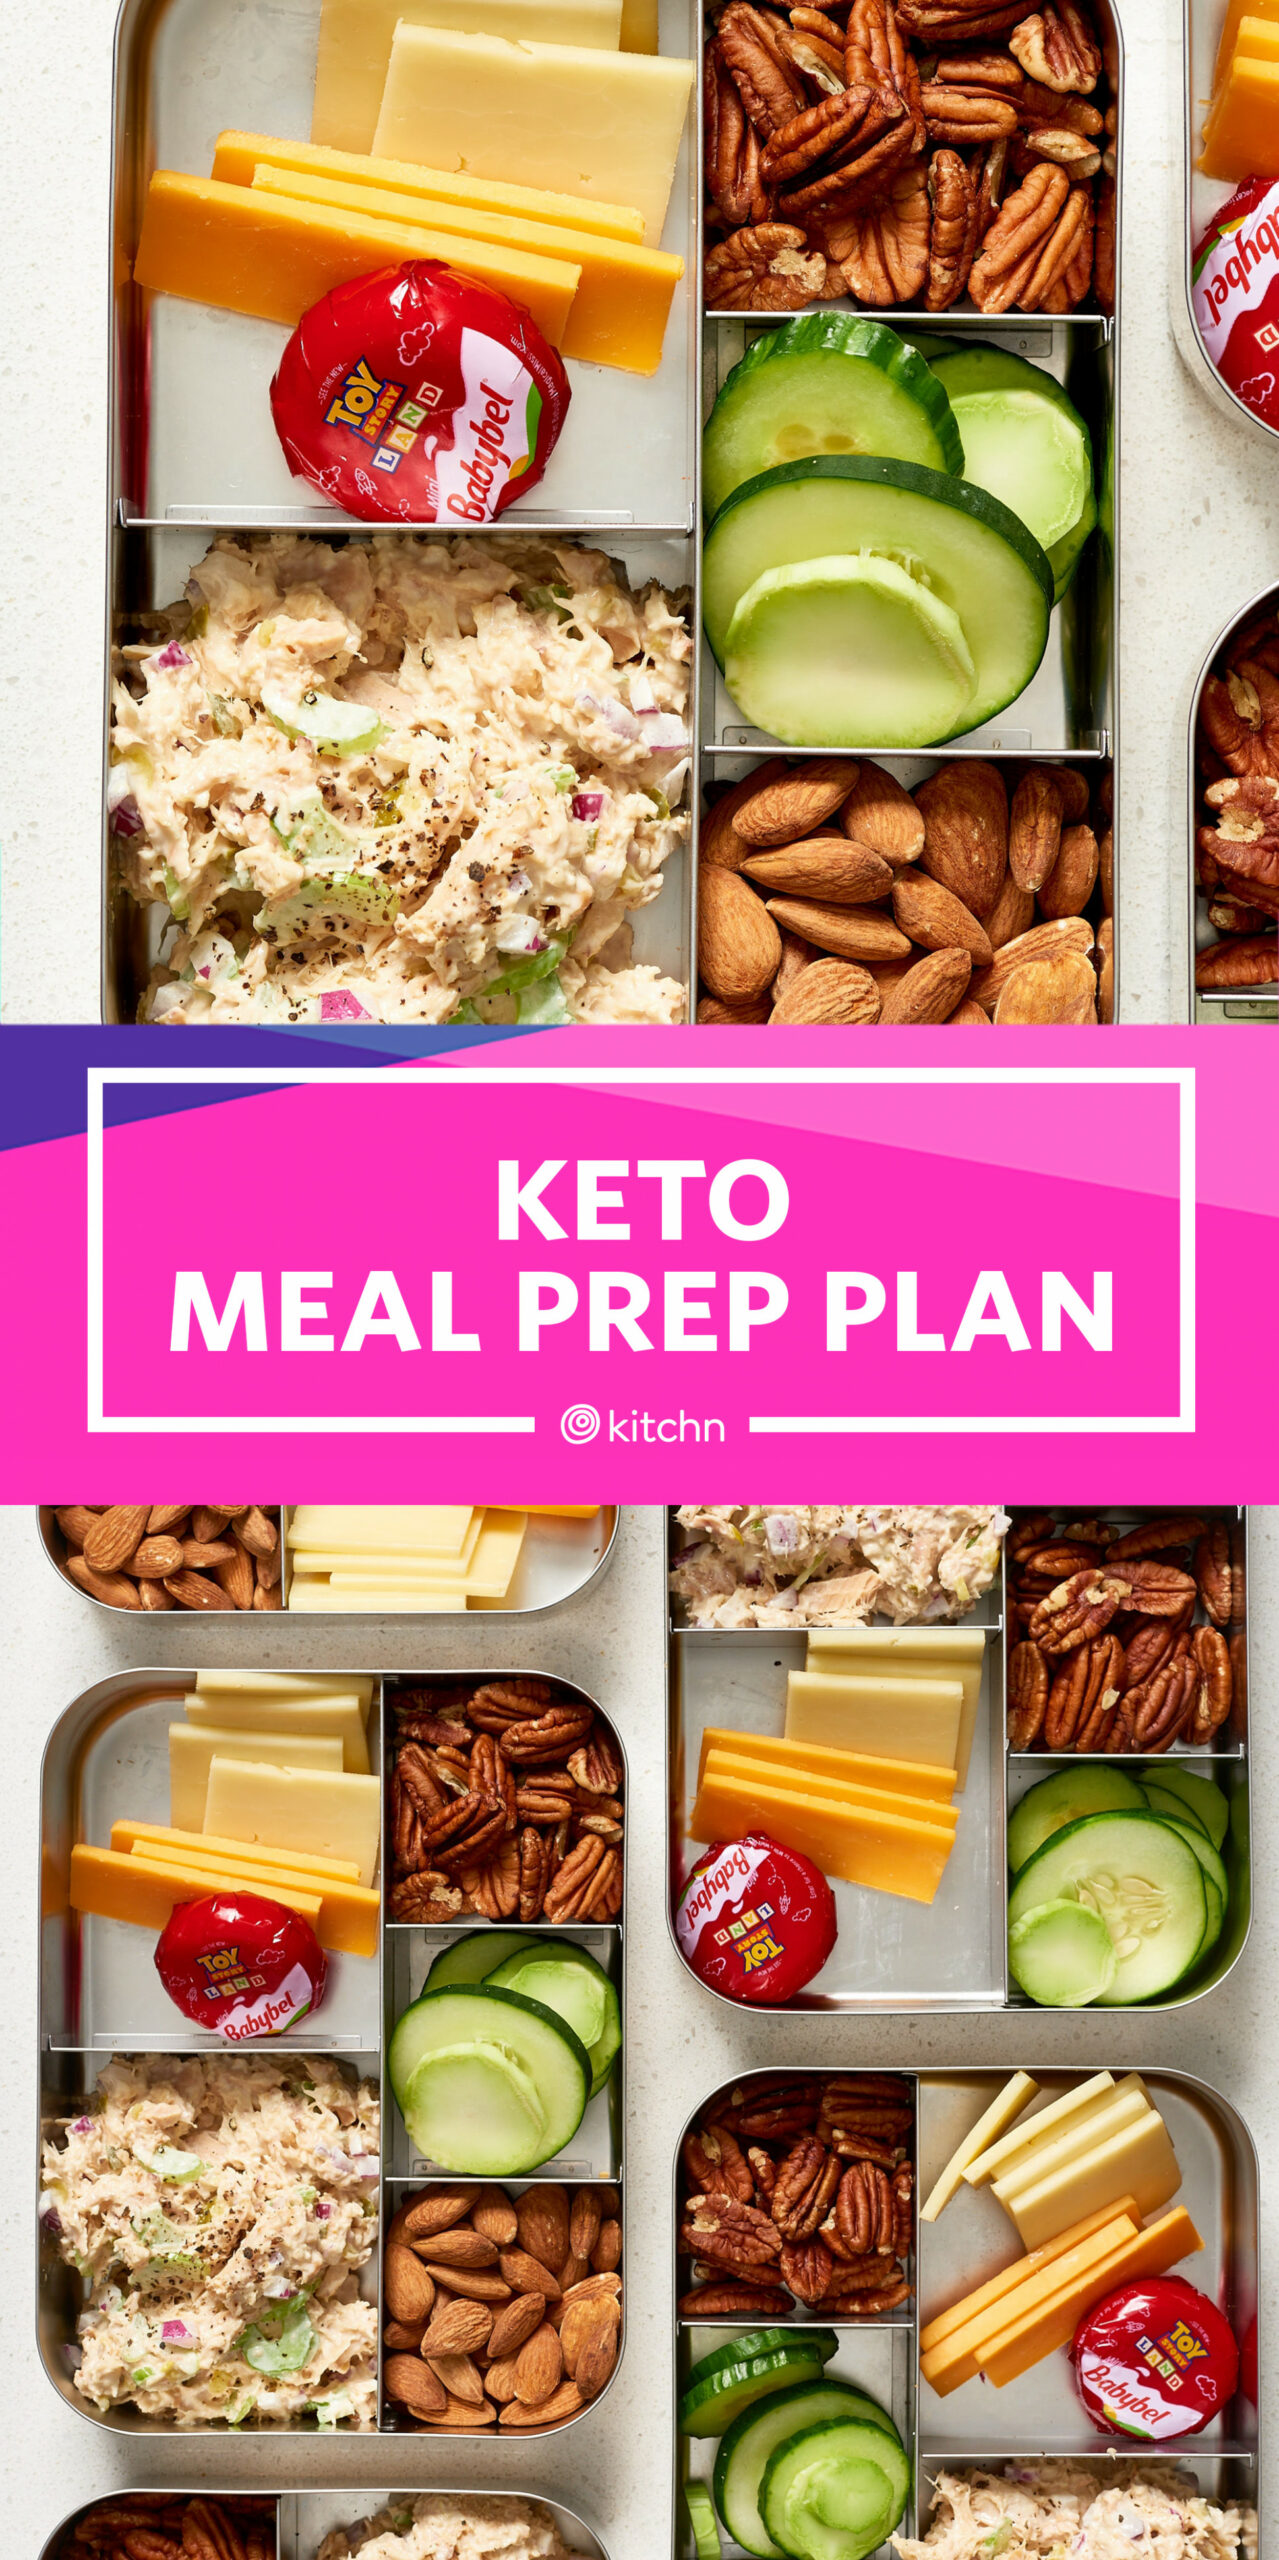 Fast Keto Meal Prep in Under 13 Hours | Kitchn - keto diet food recipes